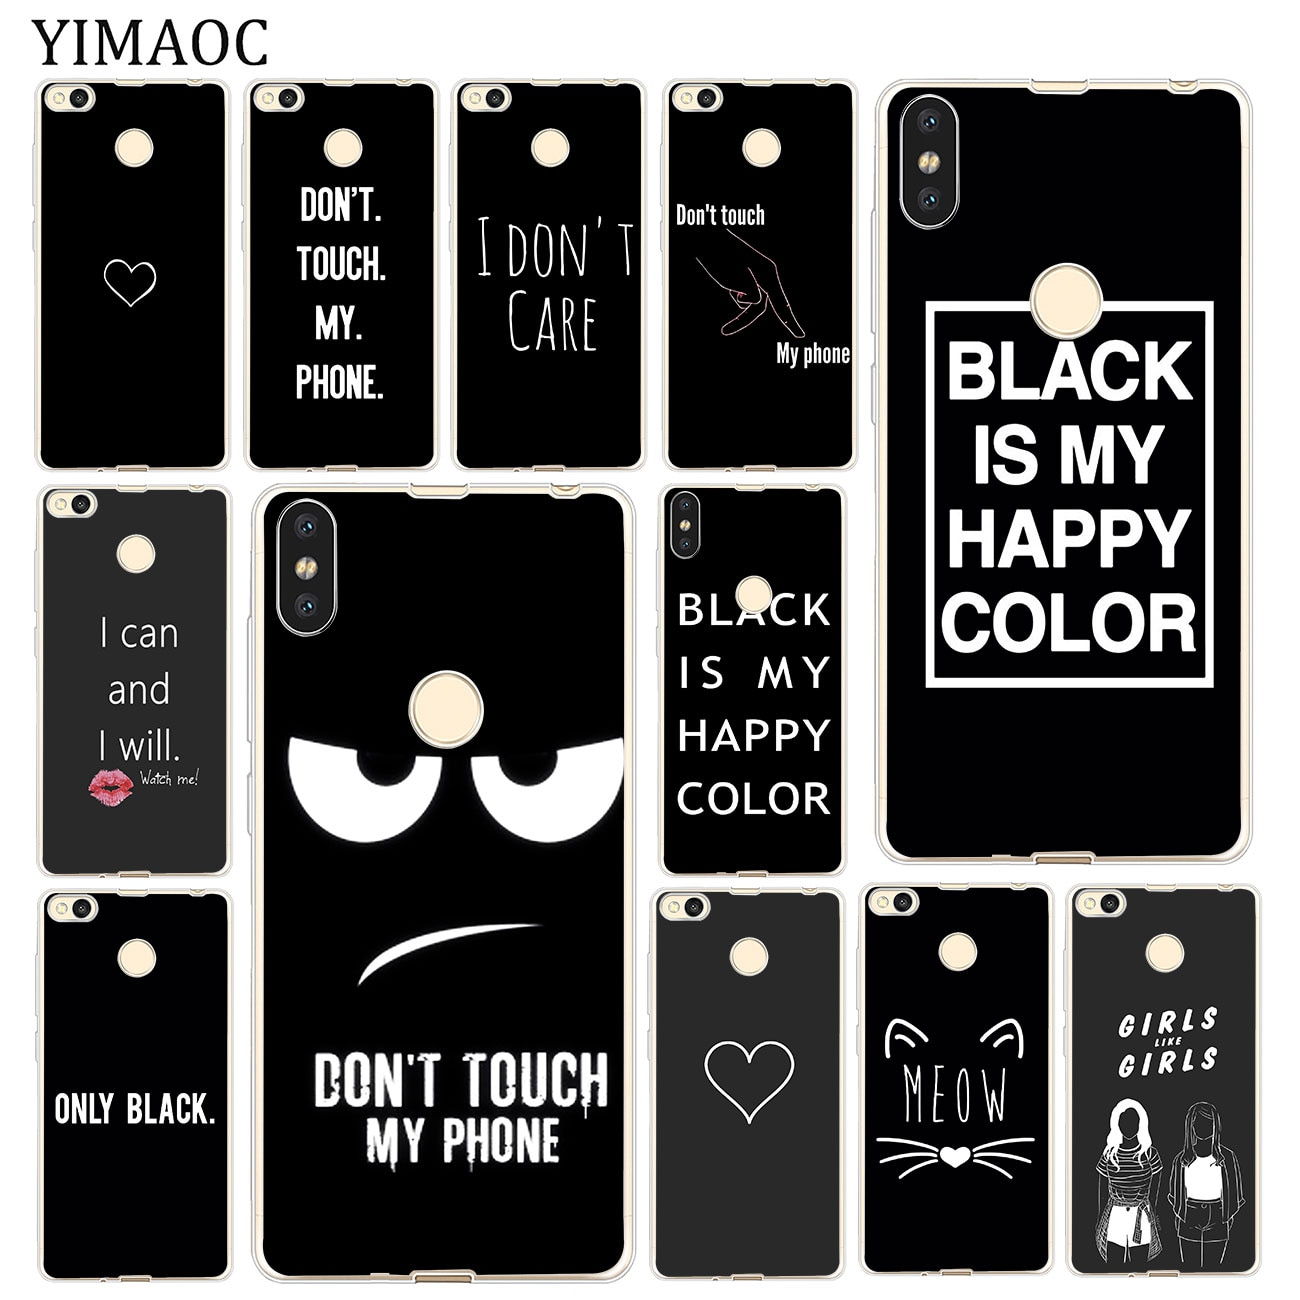 Black is My Happy Color Don't touch my phone Case for Xiaomi MI Redmi 8A 7A 6A 5A 4X Note 8 7 6 Pro